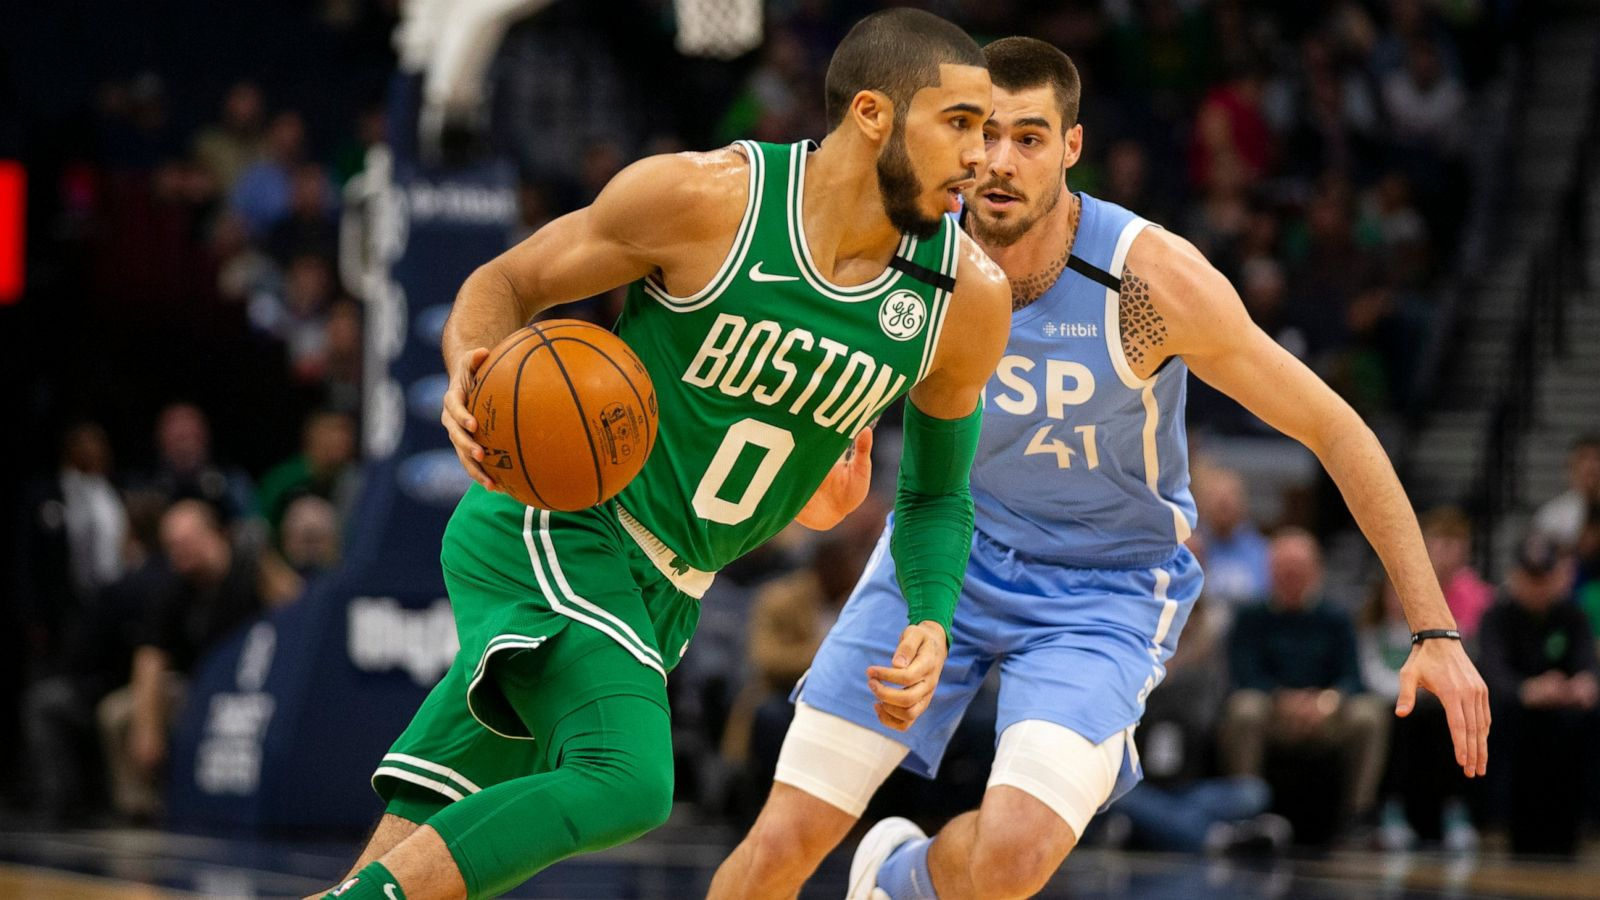 Preview: Celtics Host Minnesota Timberwolves to Close Out Homestand